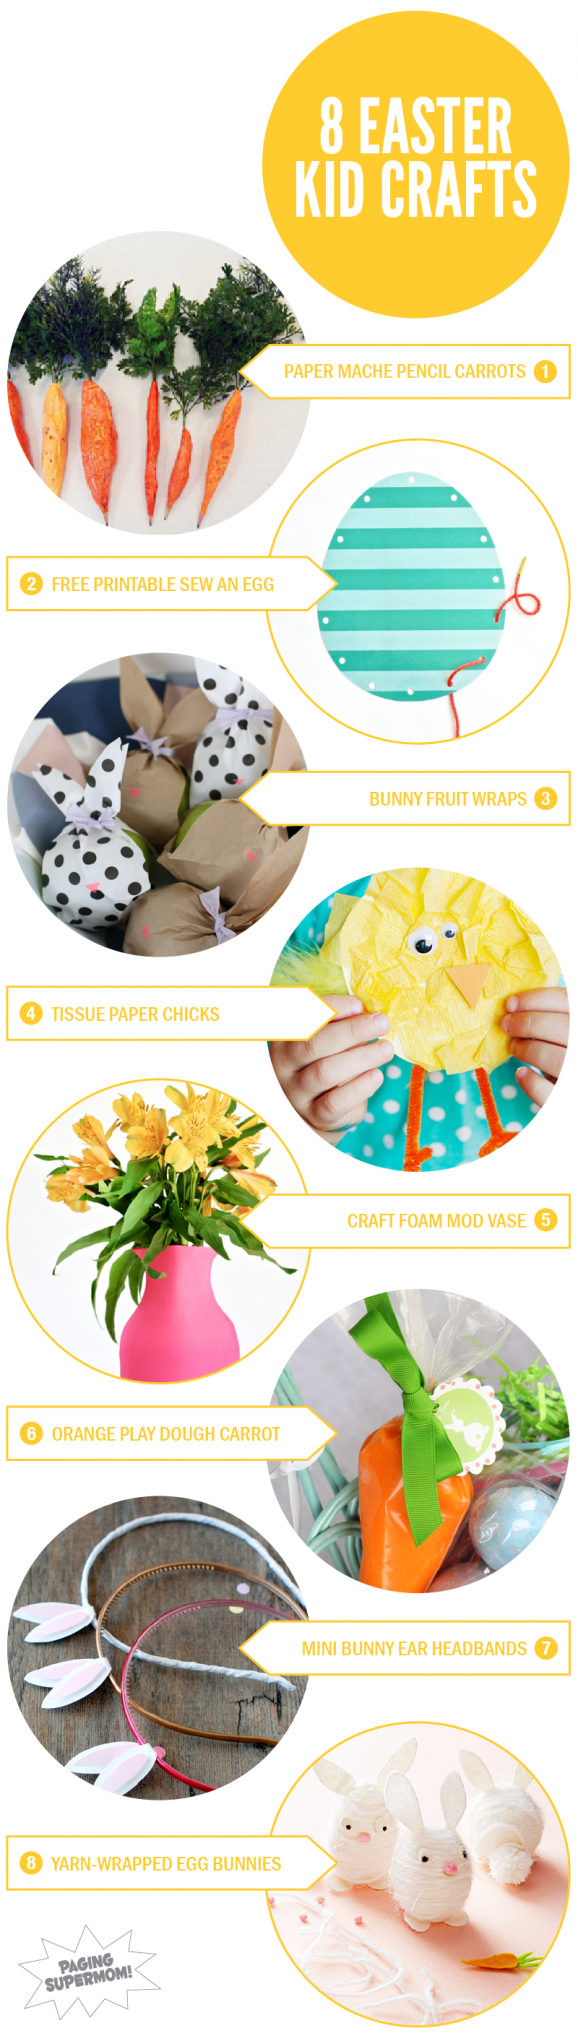 8 Easter Crafts for Kids via @PagingSupermom #kidscrafts #easter